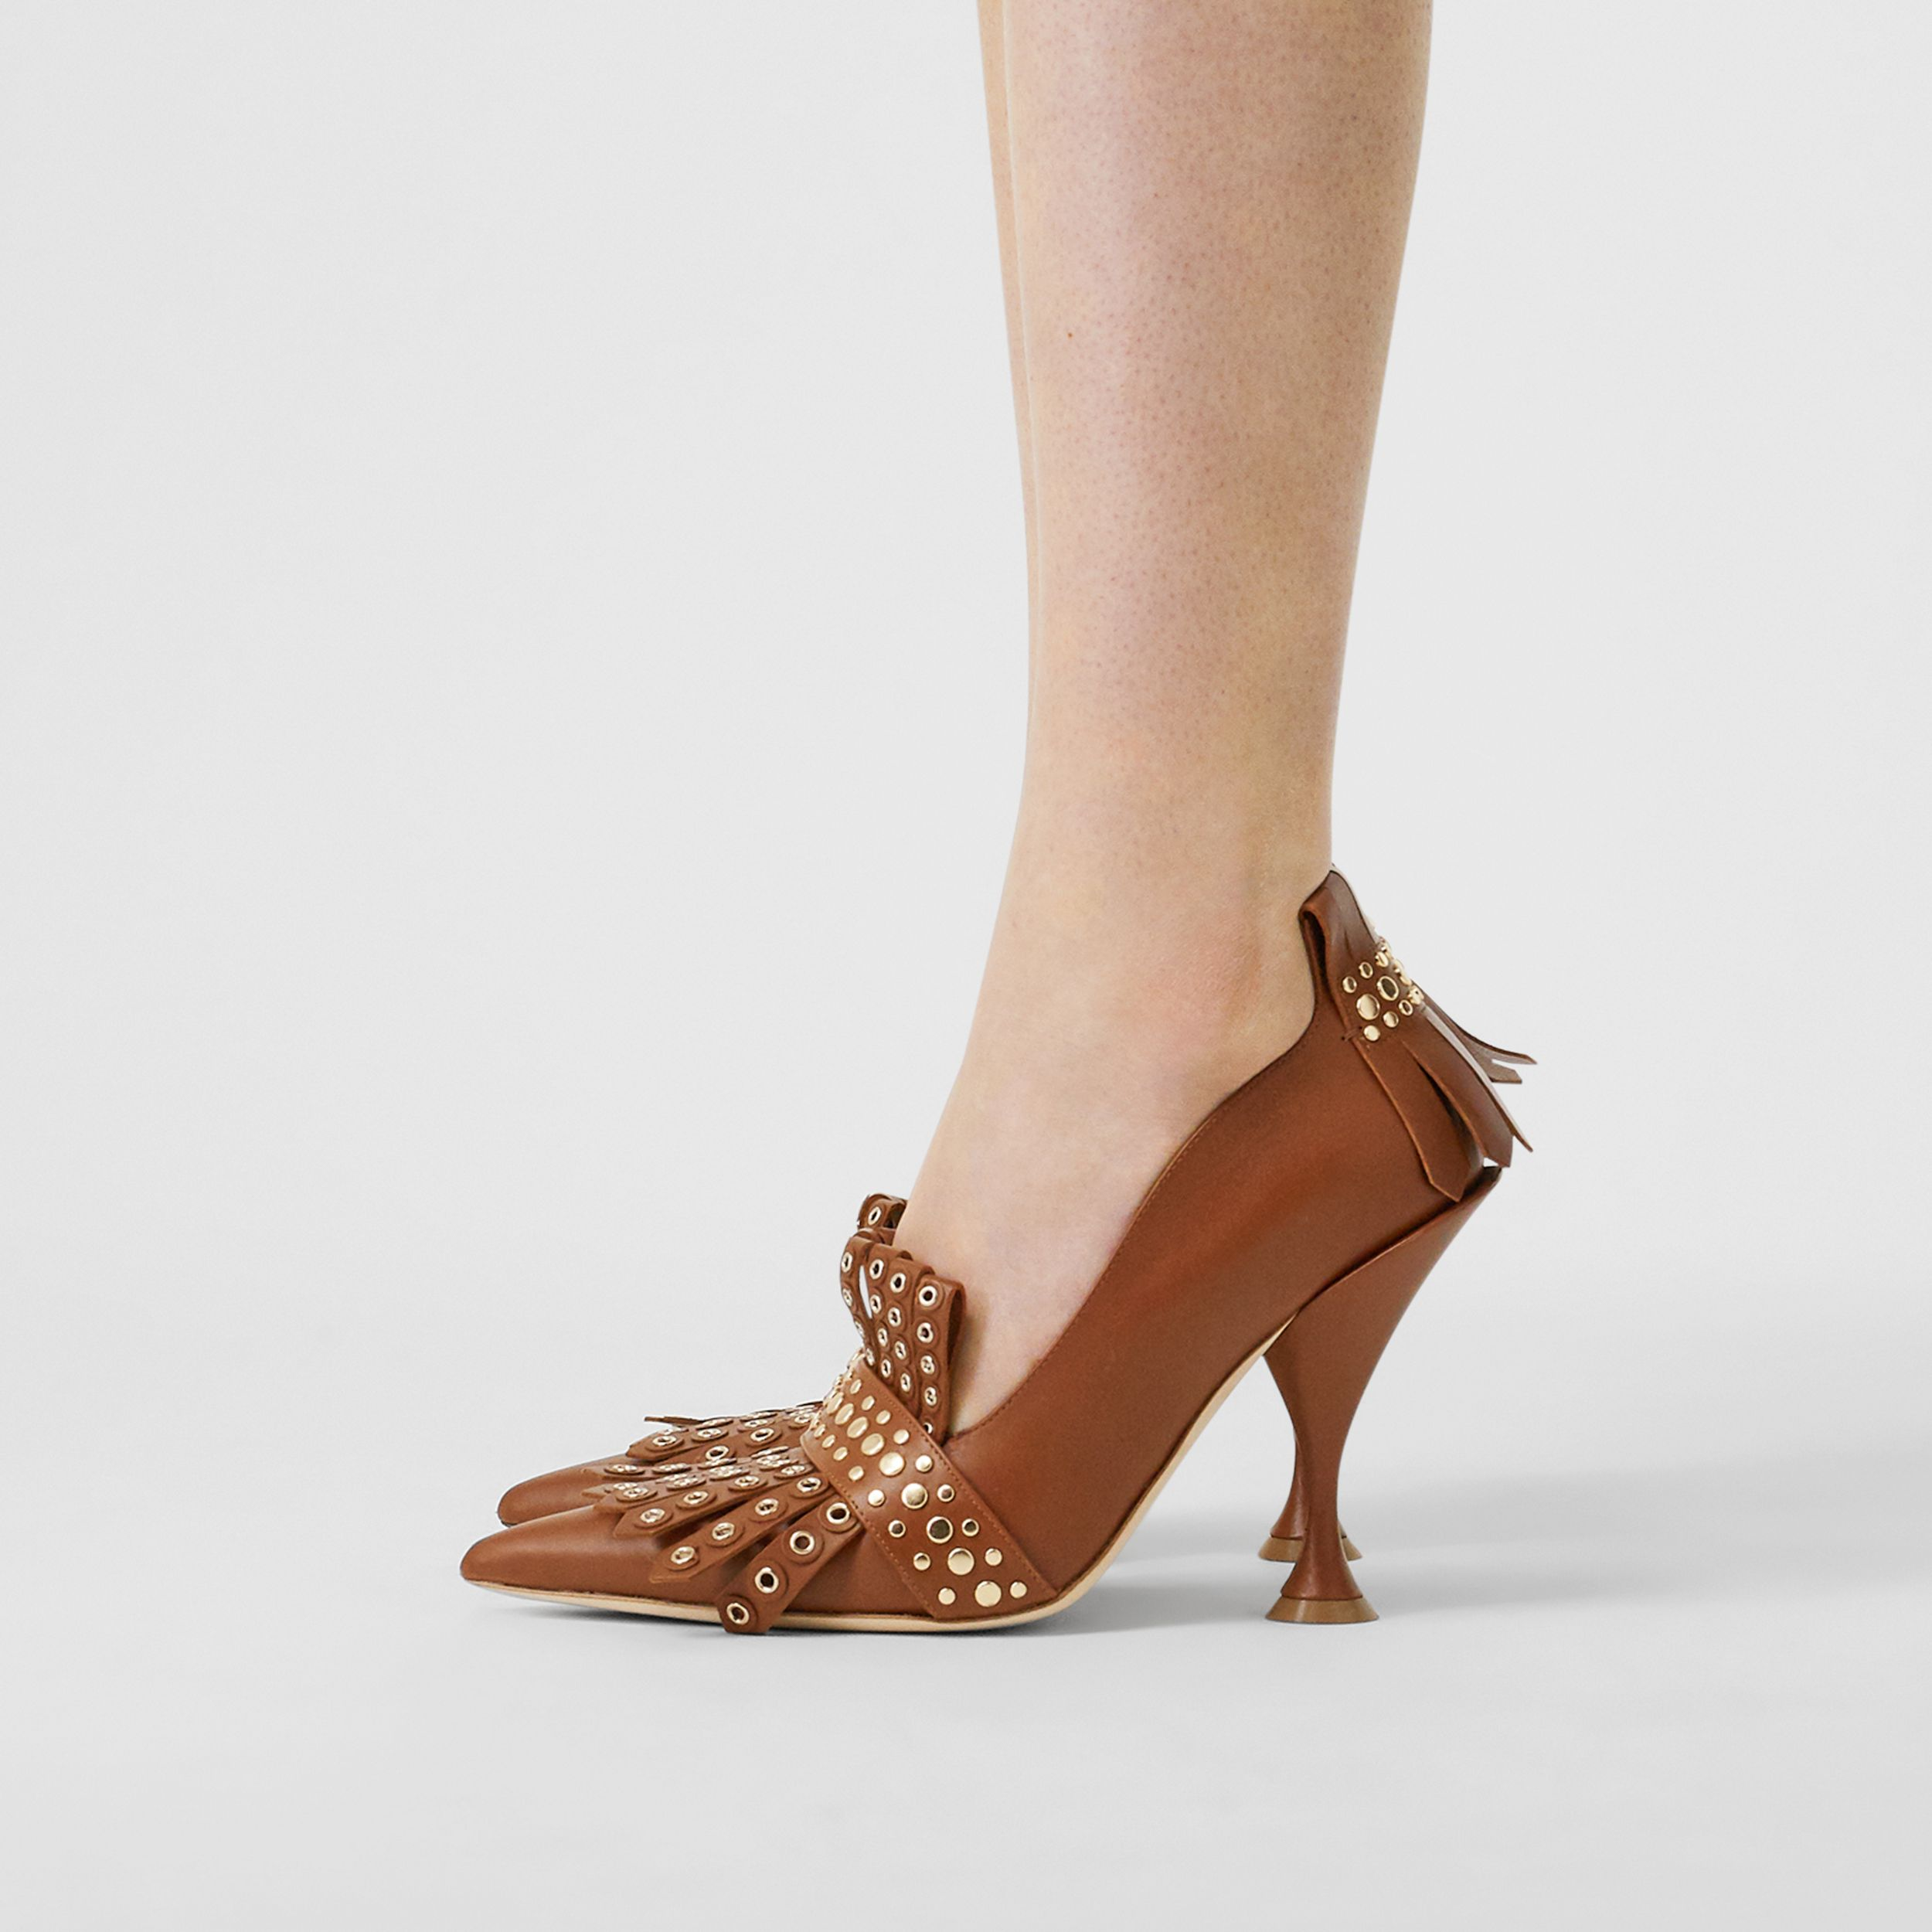 Studded Kiltie Fringe Leather Point-toe Pumps in Tan - Women | Burberry United Kingdom - 3